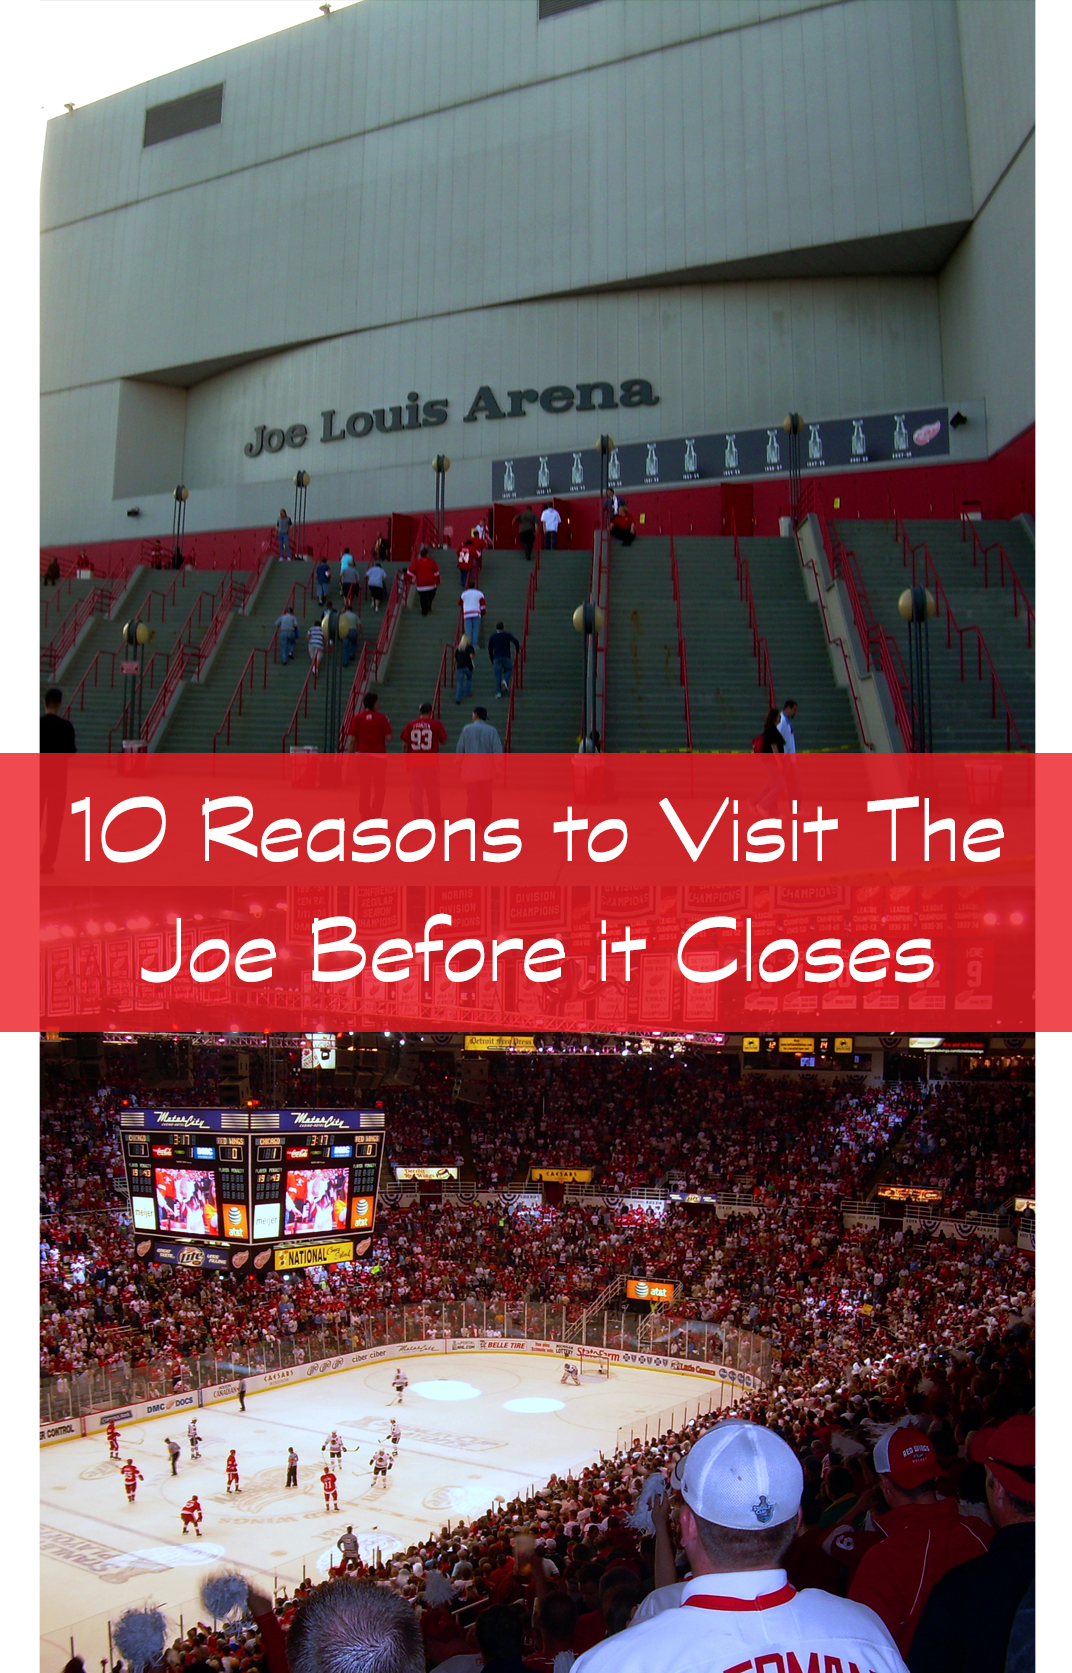 Joe Louis Arena in Detroit, MI